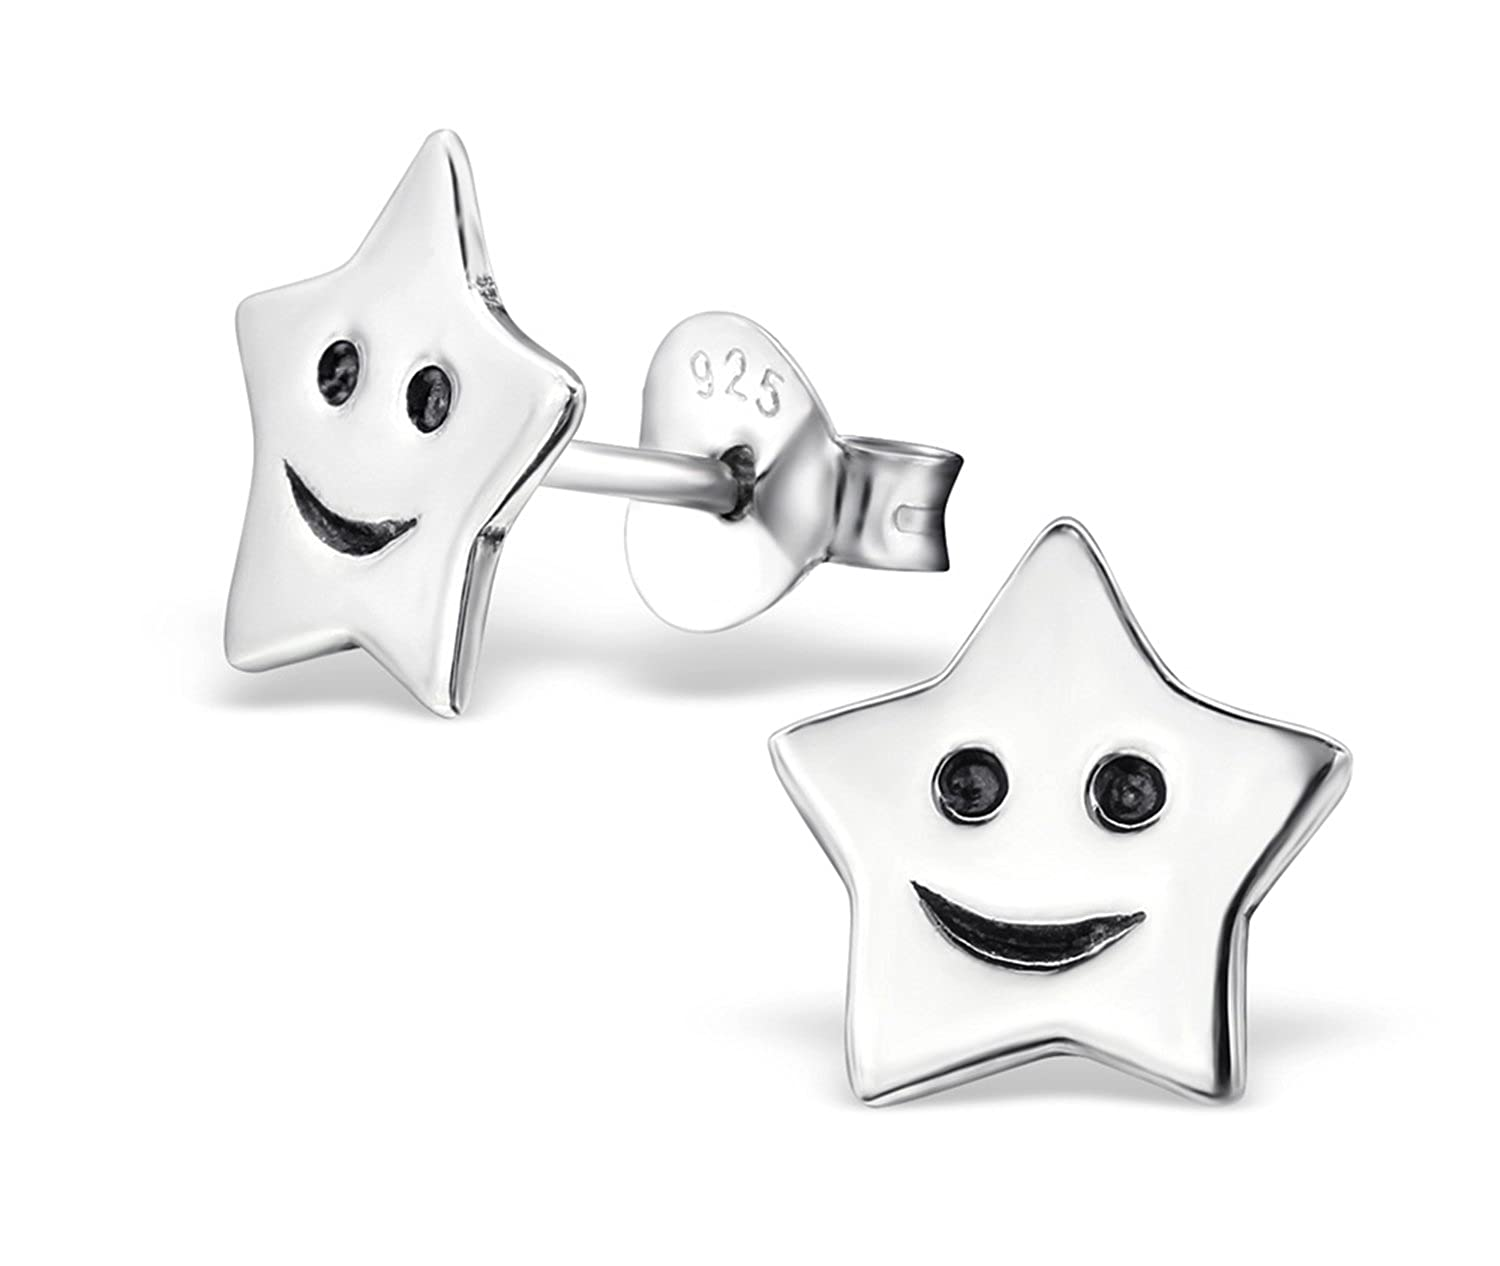 Best Wing Jewelry .925 Sterling SilverSmiling Star Stud Earrings for Children and Teens